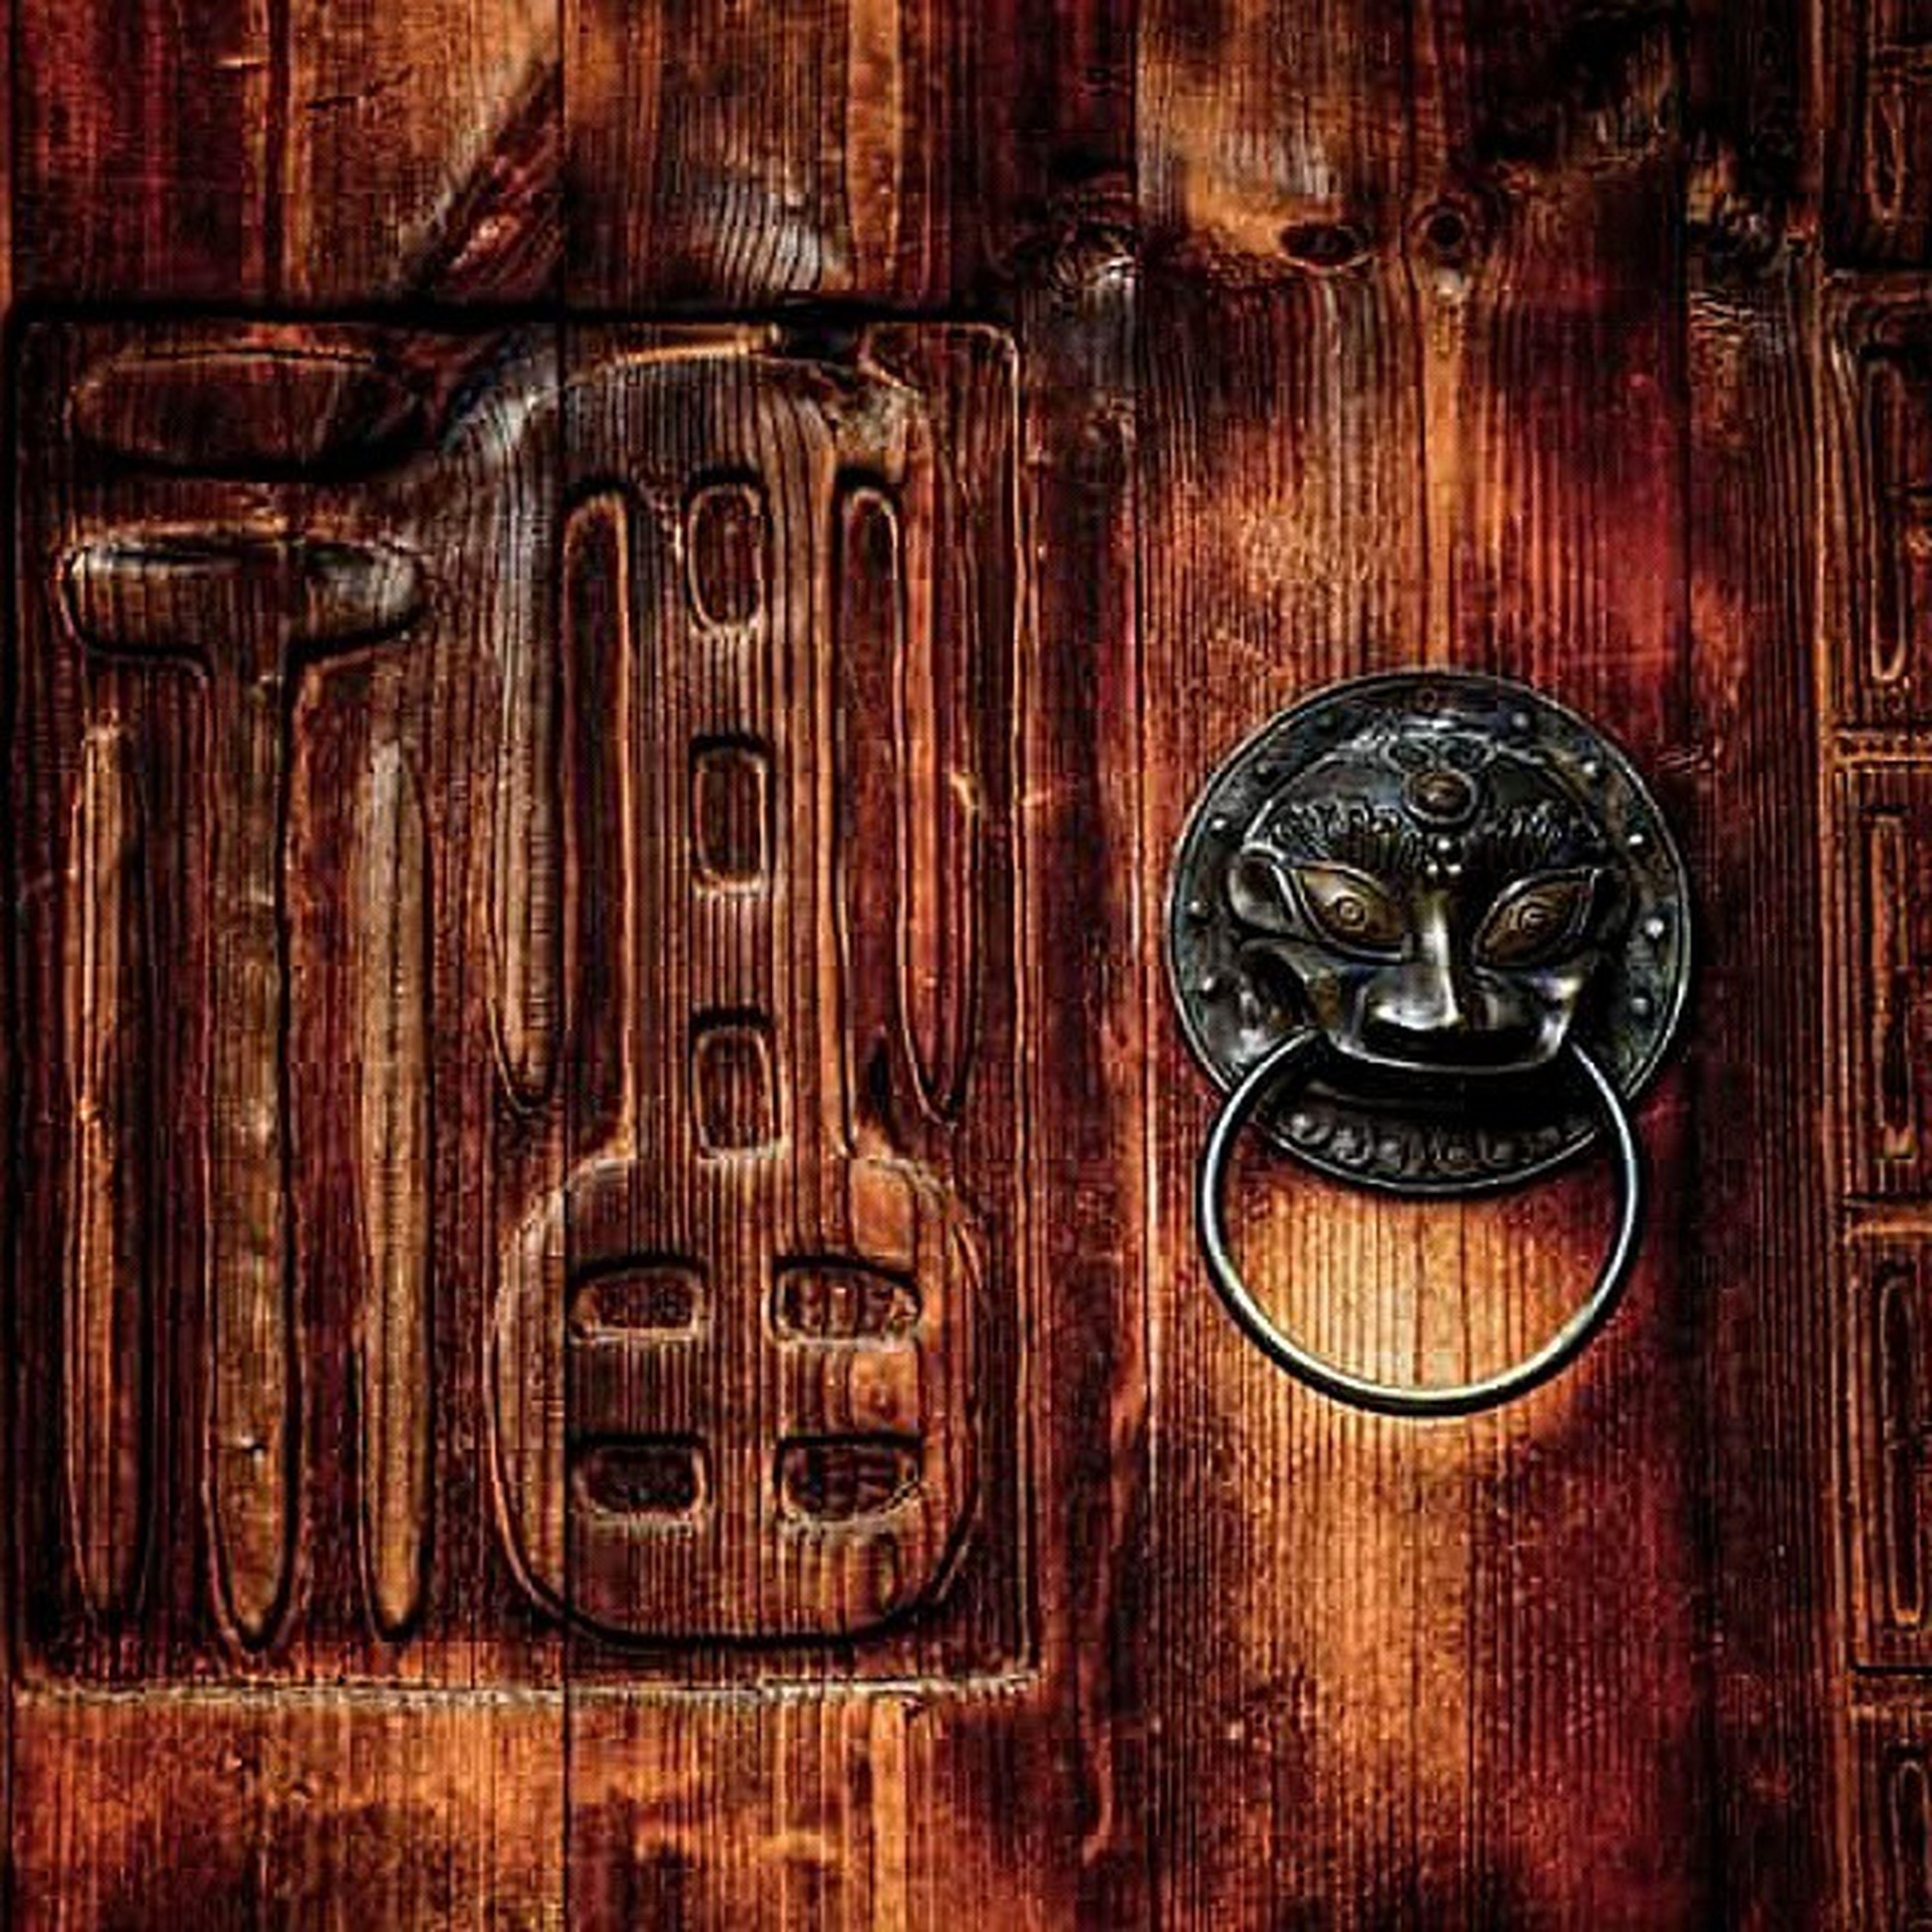 wood - material, door, indoors, wooden, close-up, full frame, closed, old, wood, backgrounds, old-fashioned, metal, safety, pattern, protection, security, communication, ornate, design, no people